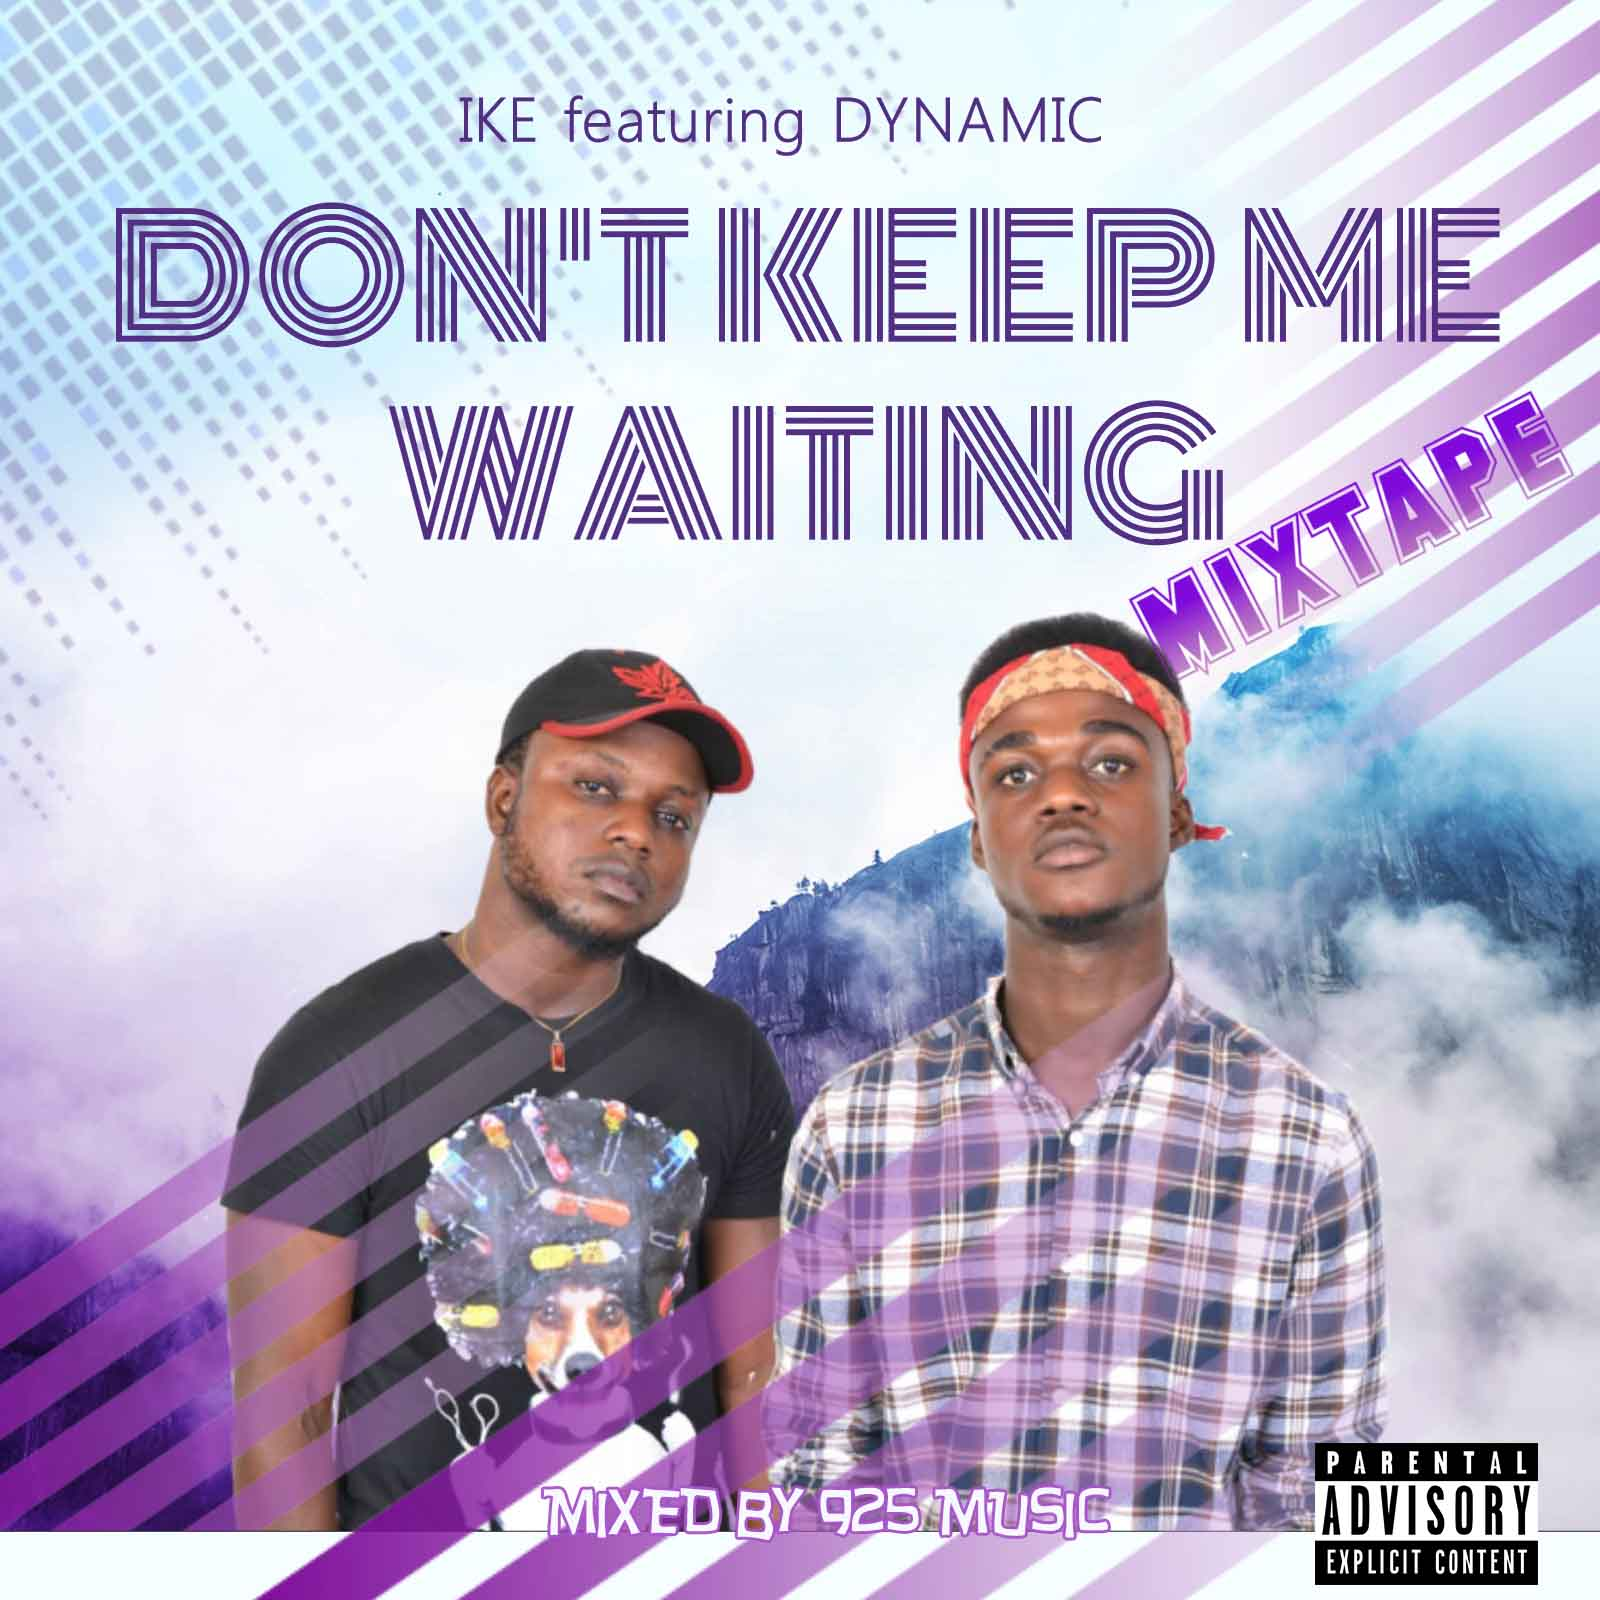 Ike Ft Dynamic – Don't Keep Me Waiting Mixtape (Mixed By 925 Music)